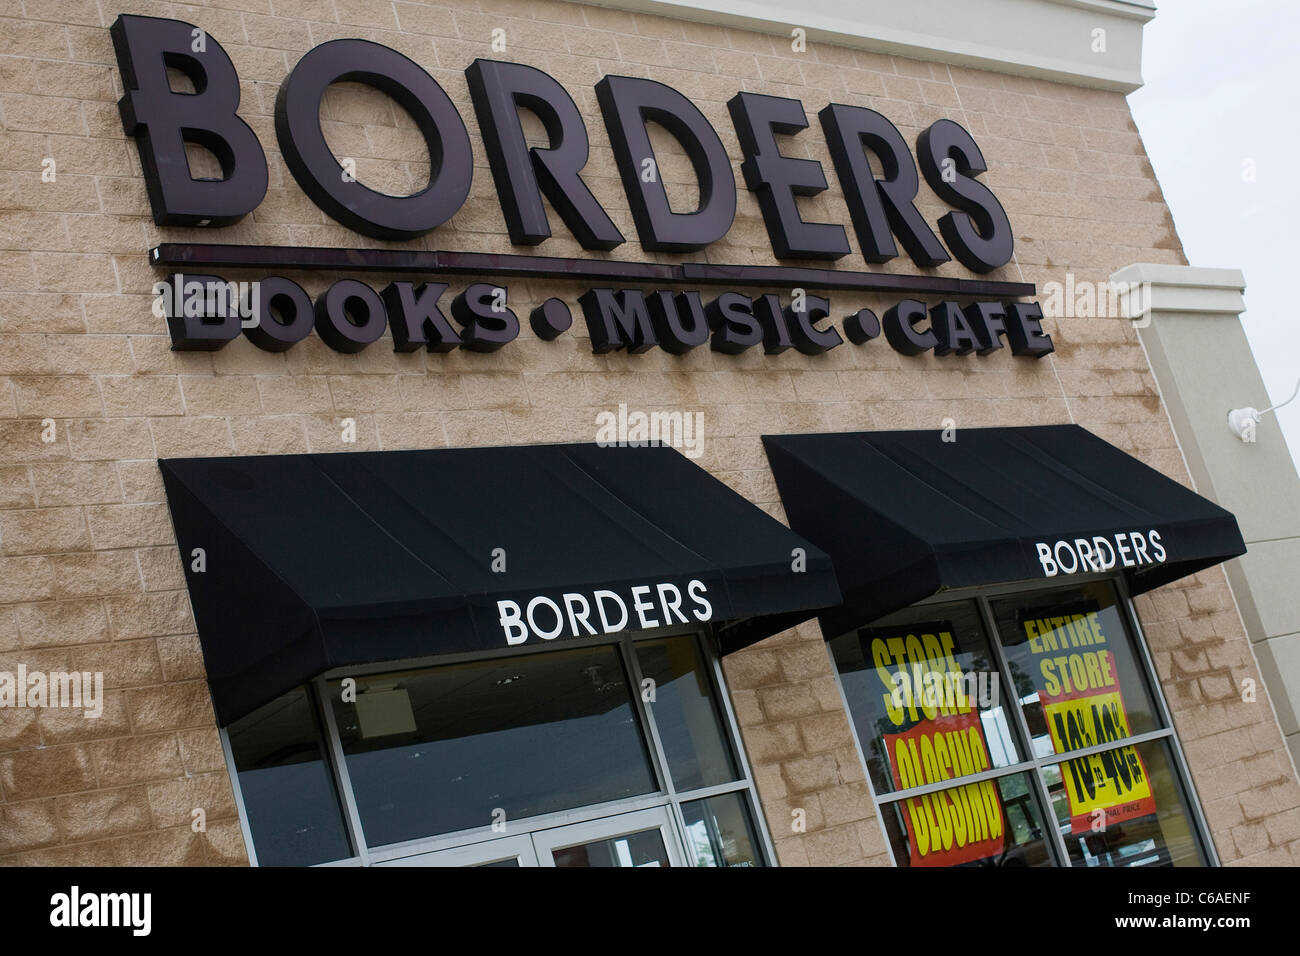 A Borders books store with a 'Going Out Of Business' banner.  - Stock Image